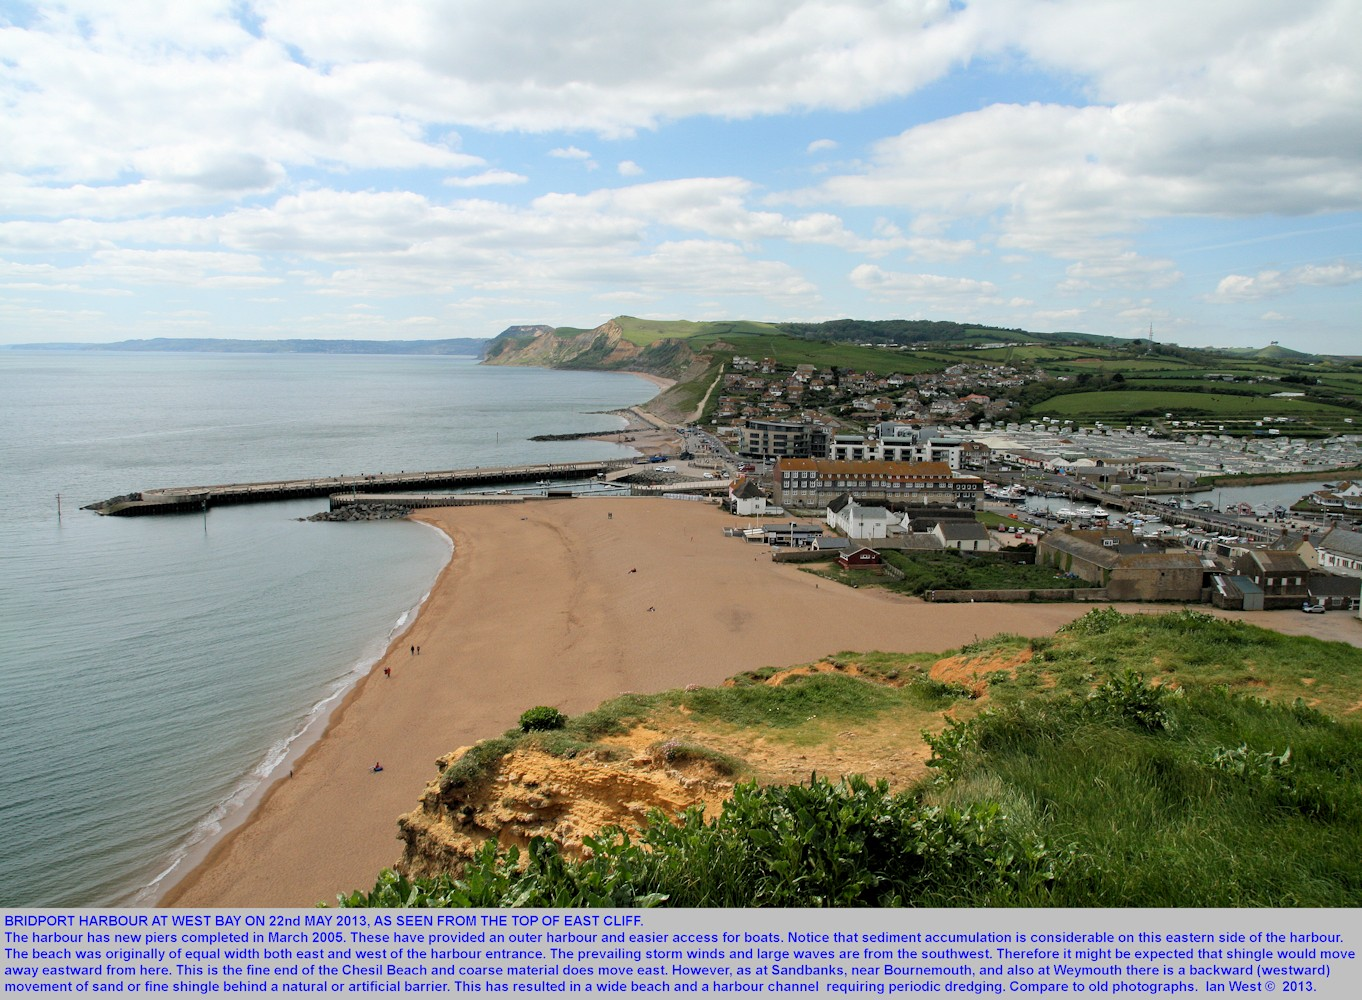 An overview of Bridport Harbour, West Bay, Bridport, Dorset, as seen from the top of East Cliff, 22nd May 2013